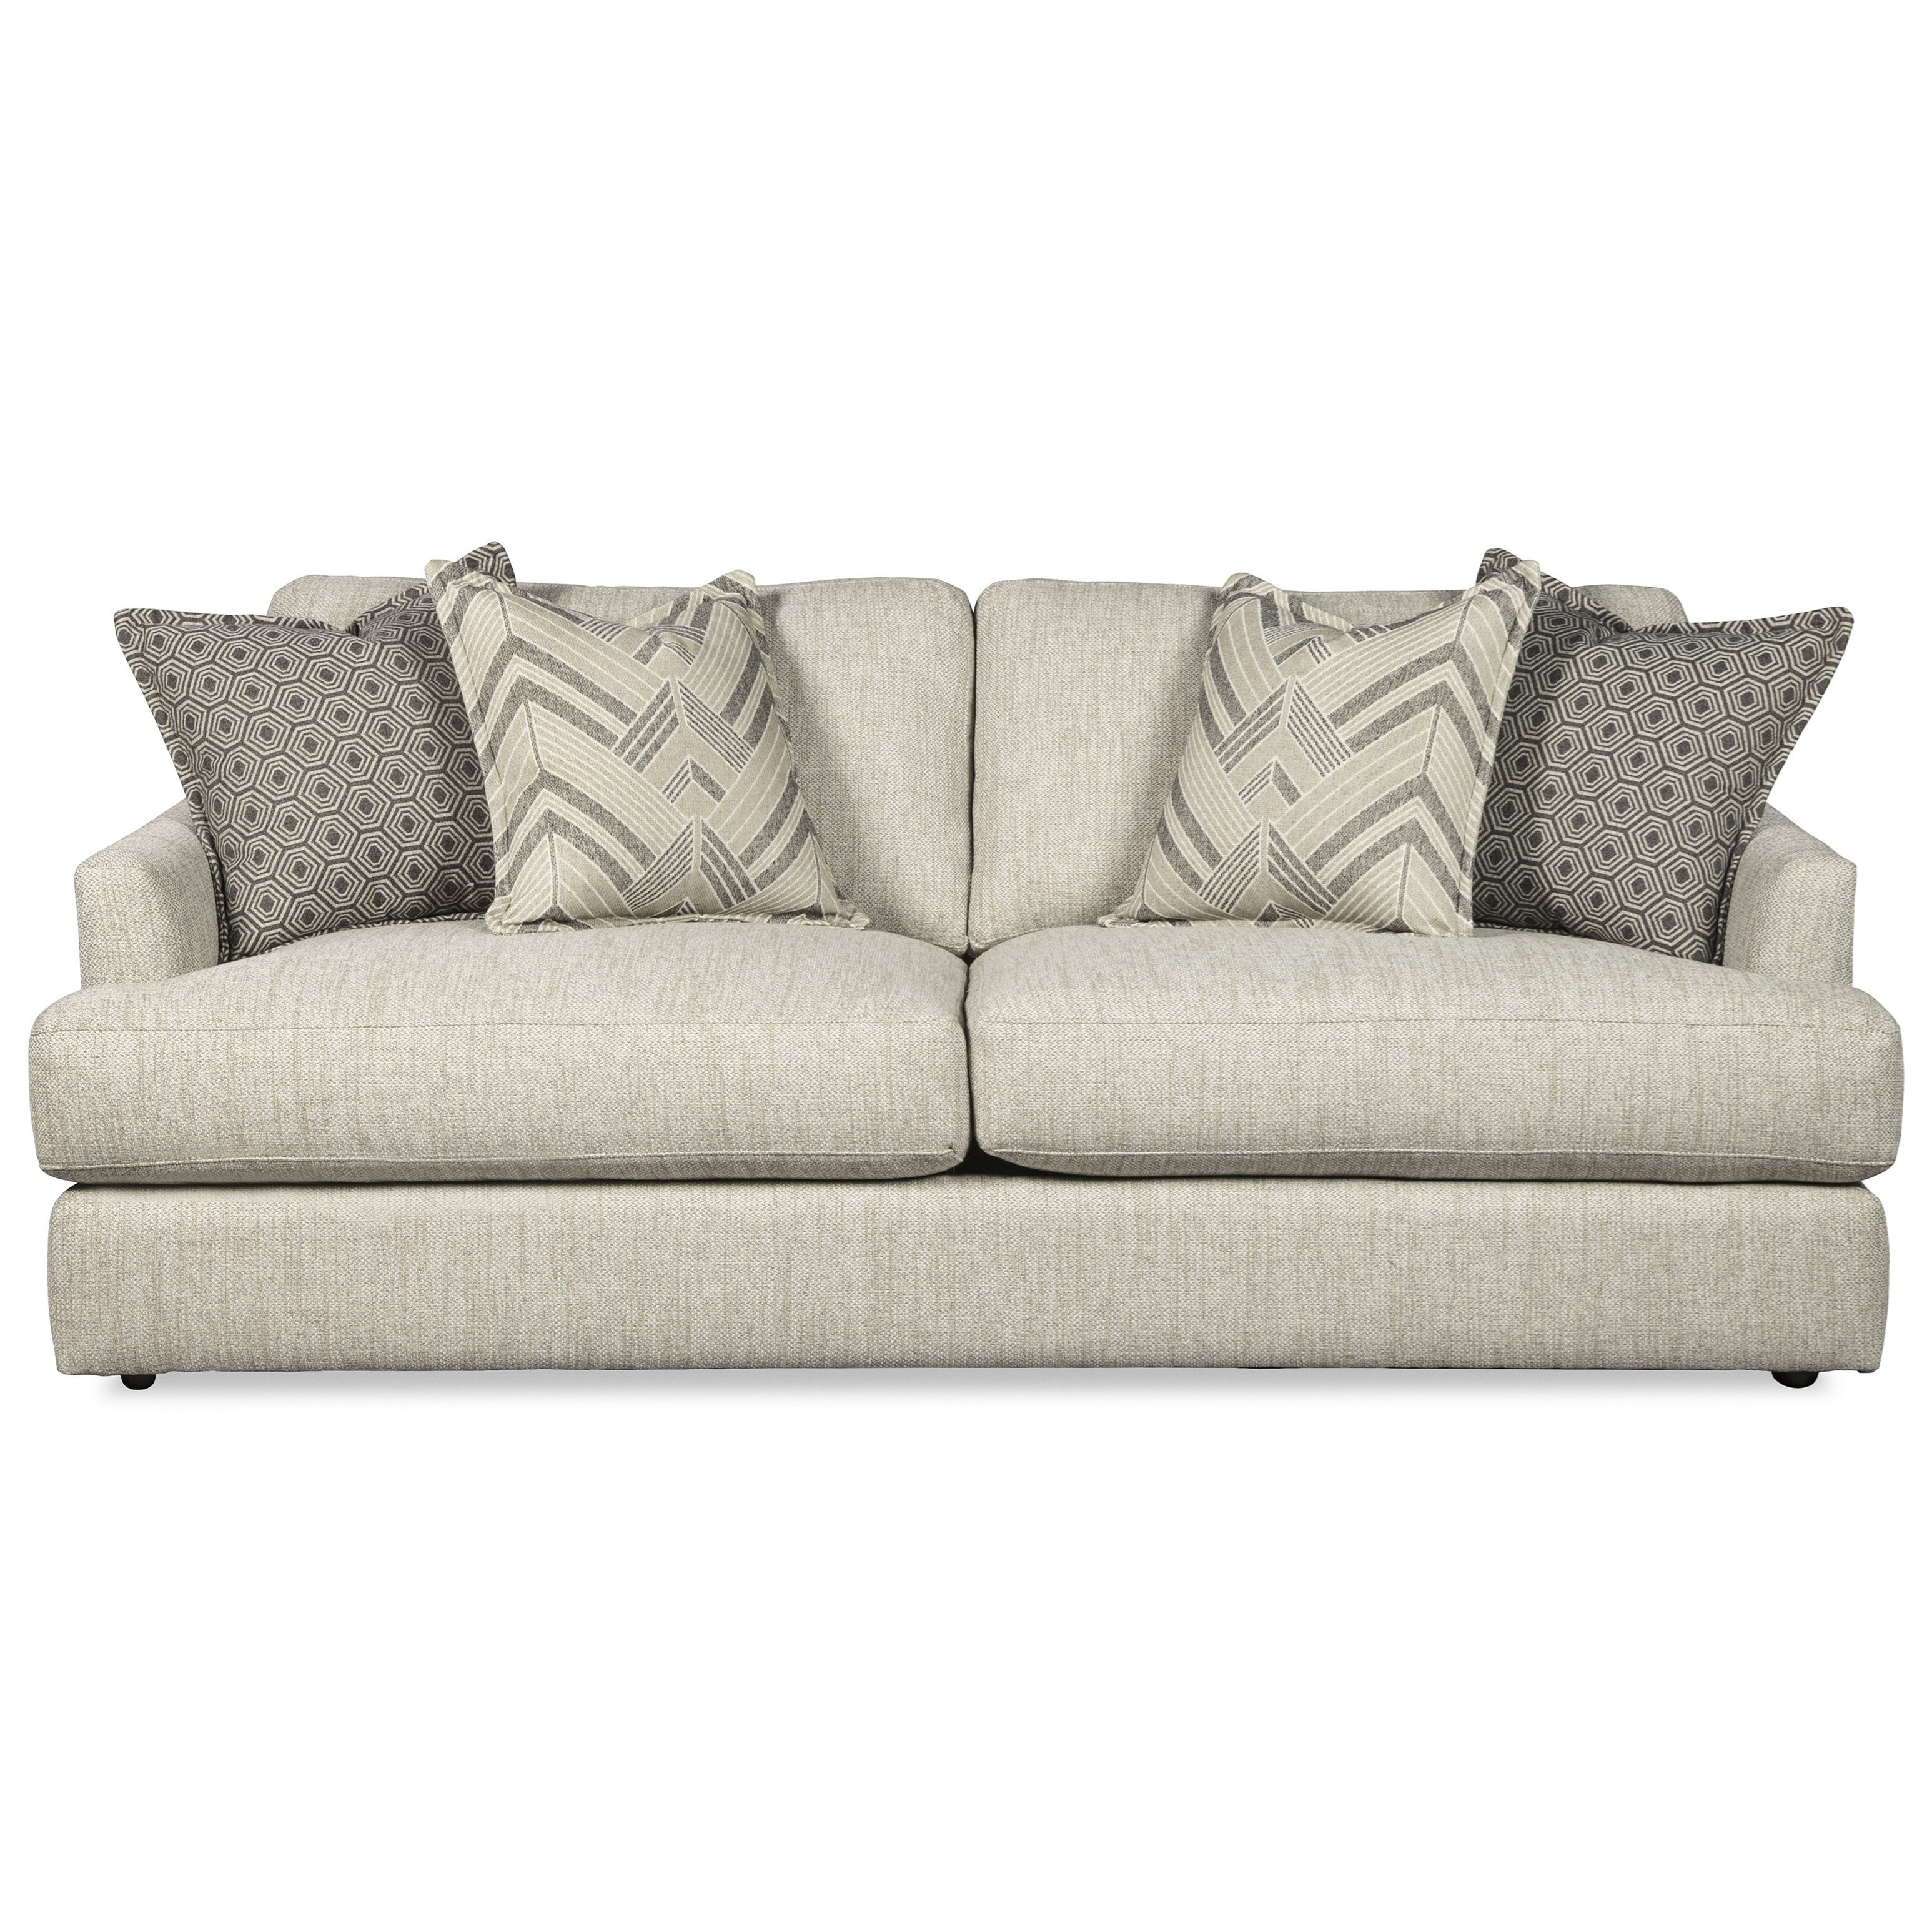 700150BD Sofa by Craftmaster at Baer's Furniture